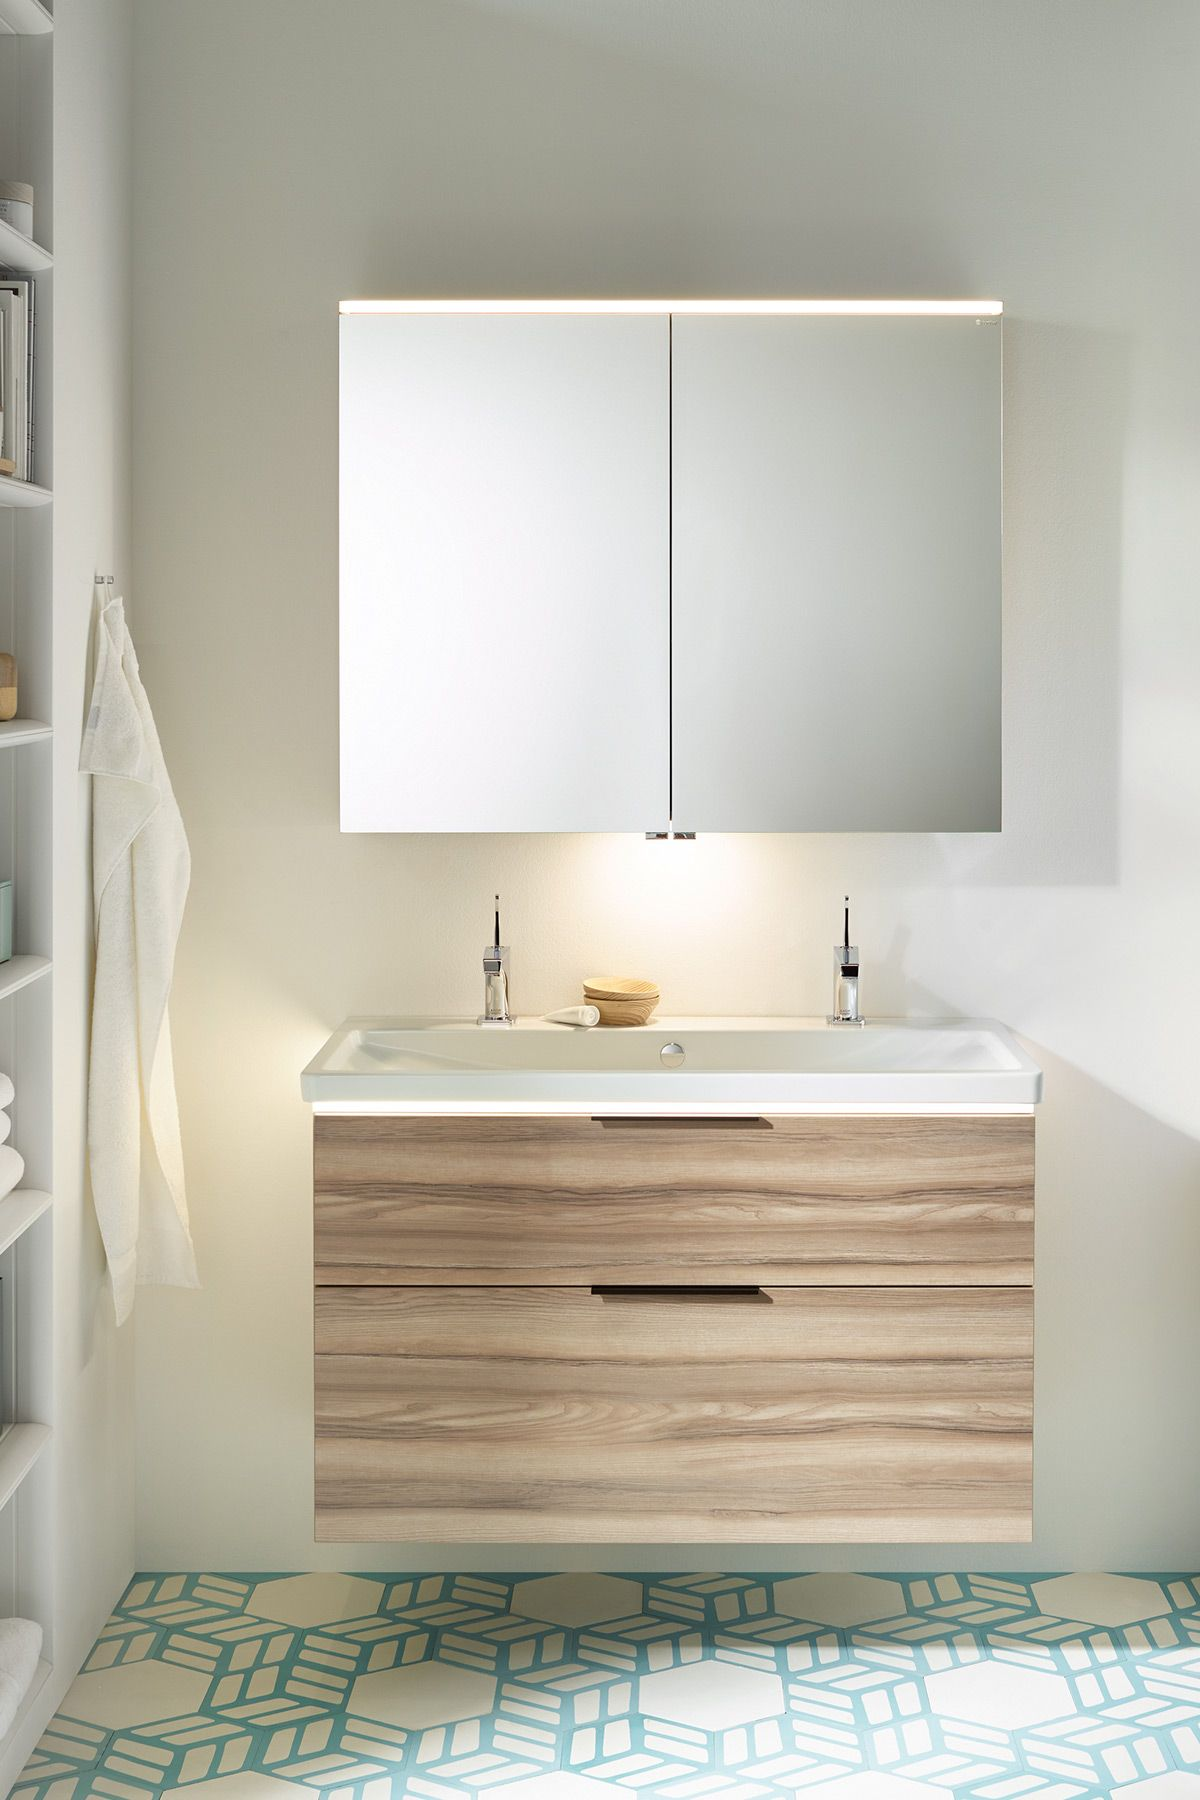 Space does matter. Bathroom collection burgbad eqio #SHK2018: new ...